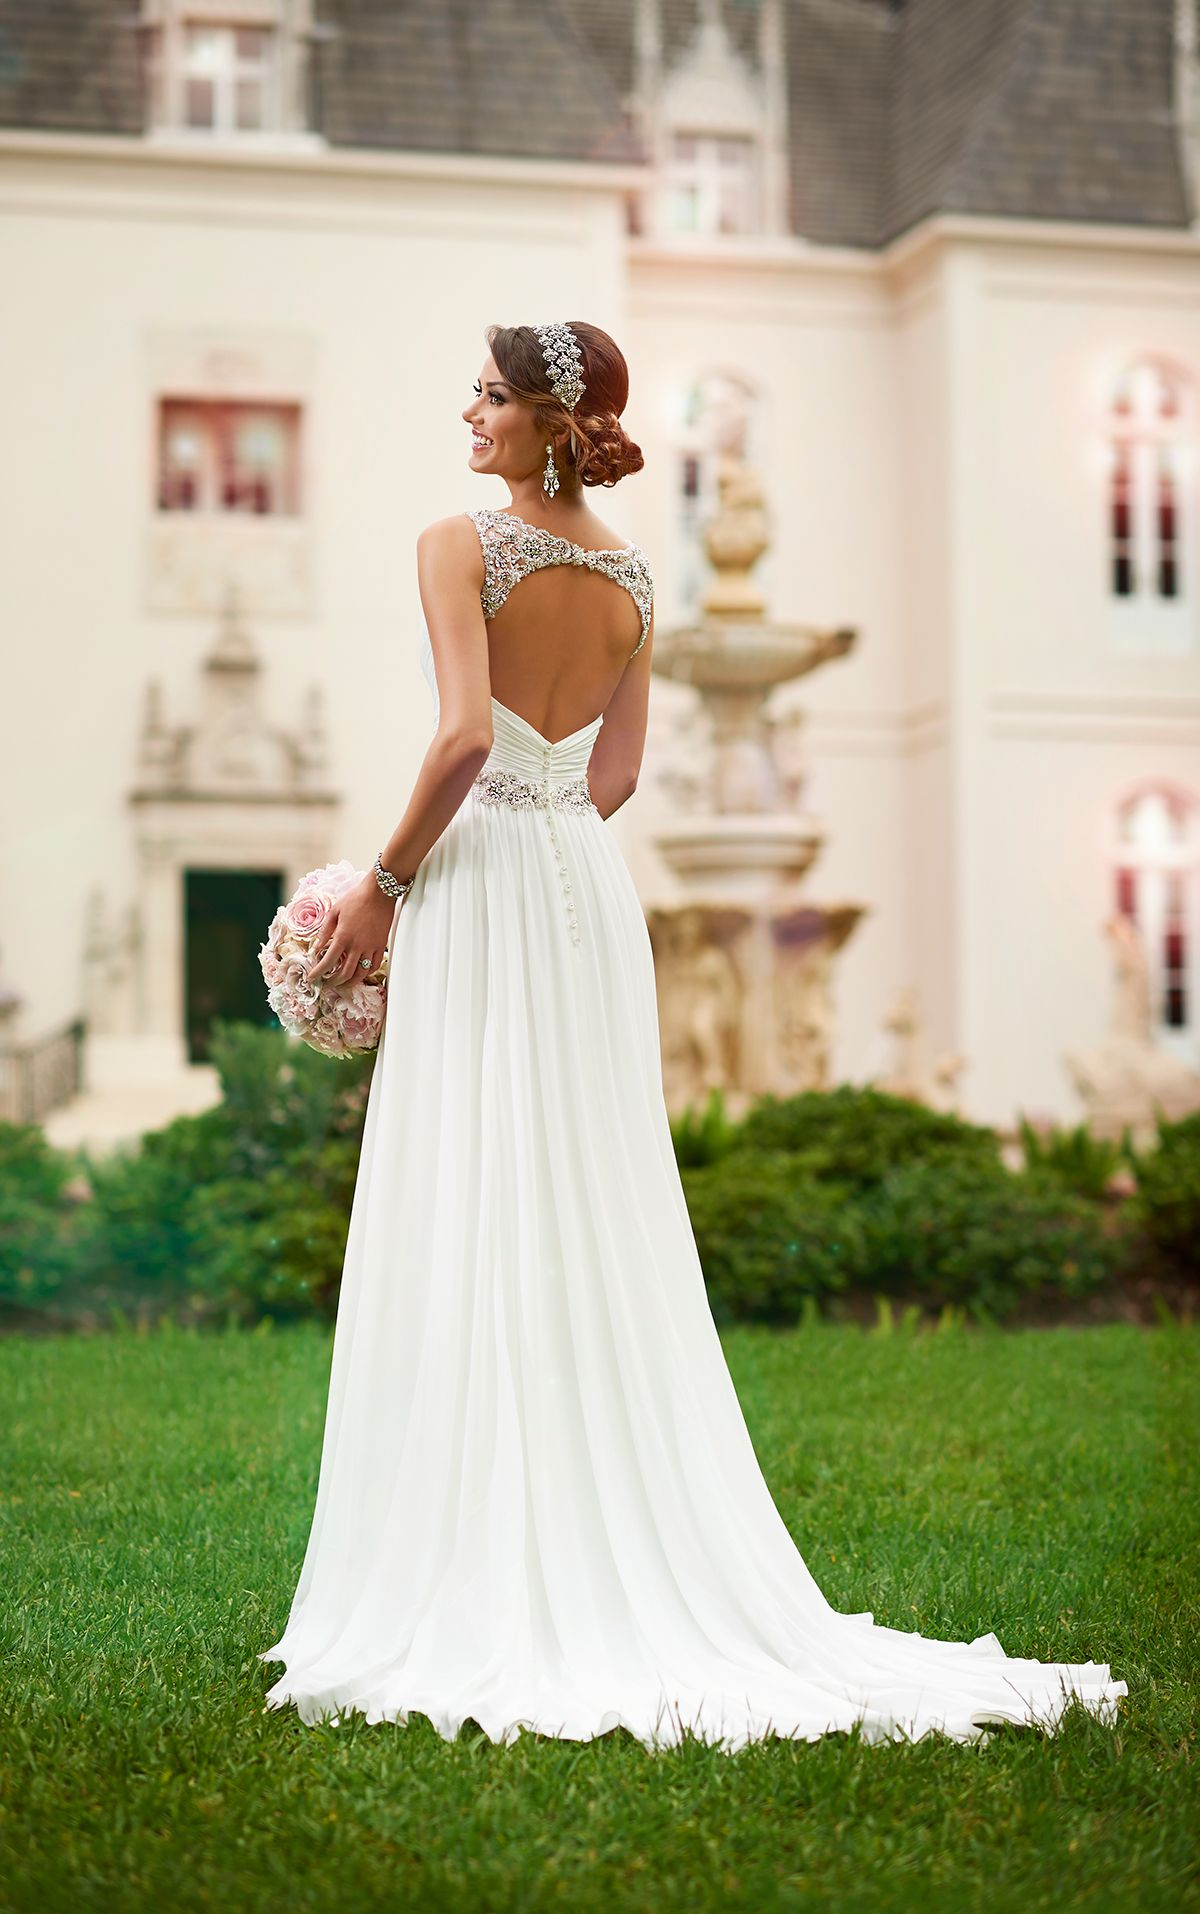 Flowy grecian bridal gown with sparkly belt stella york ethereal